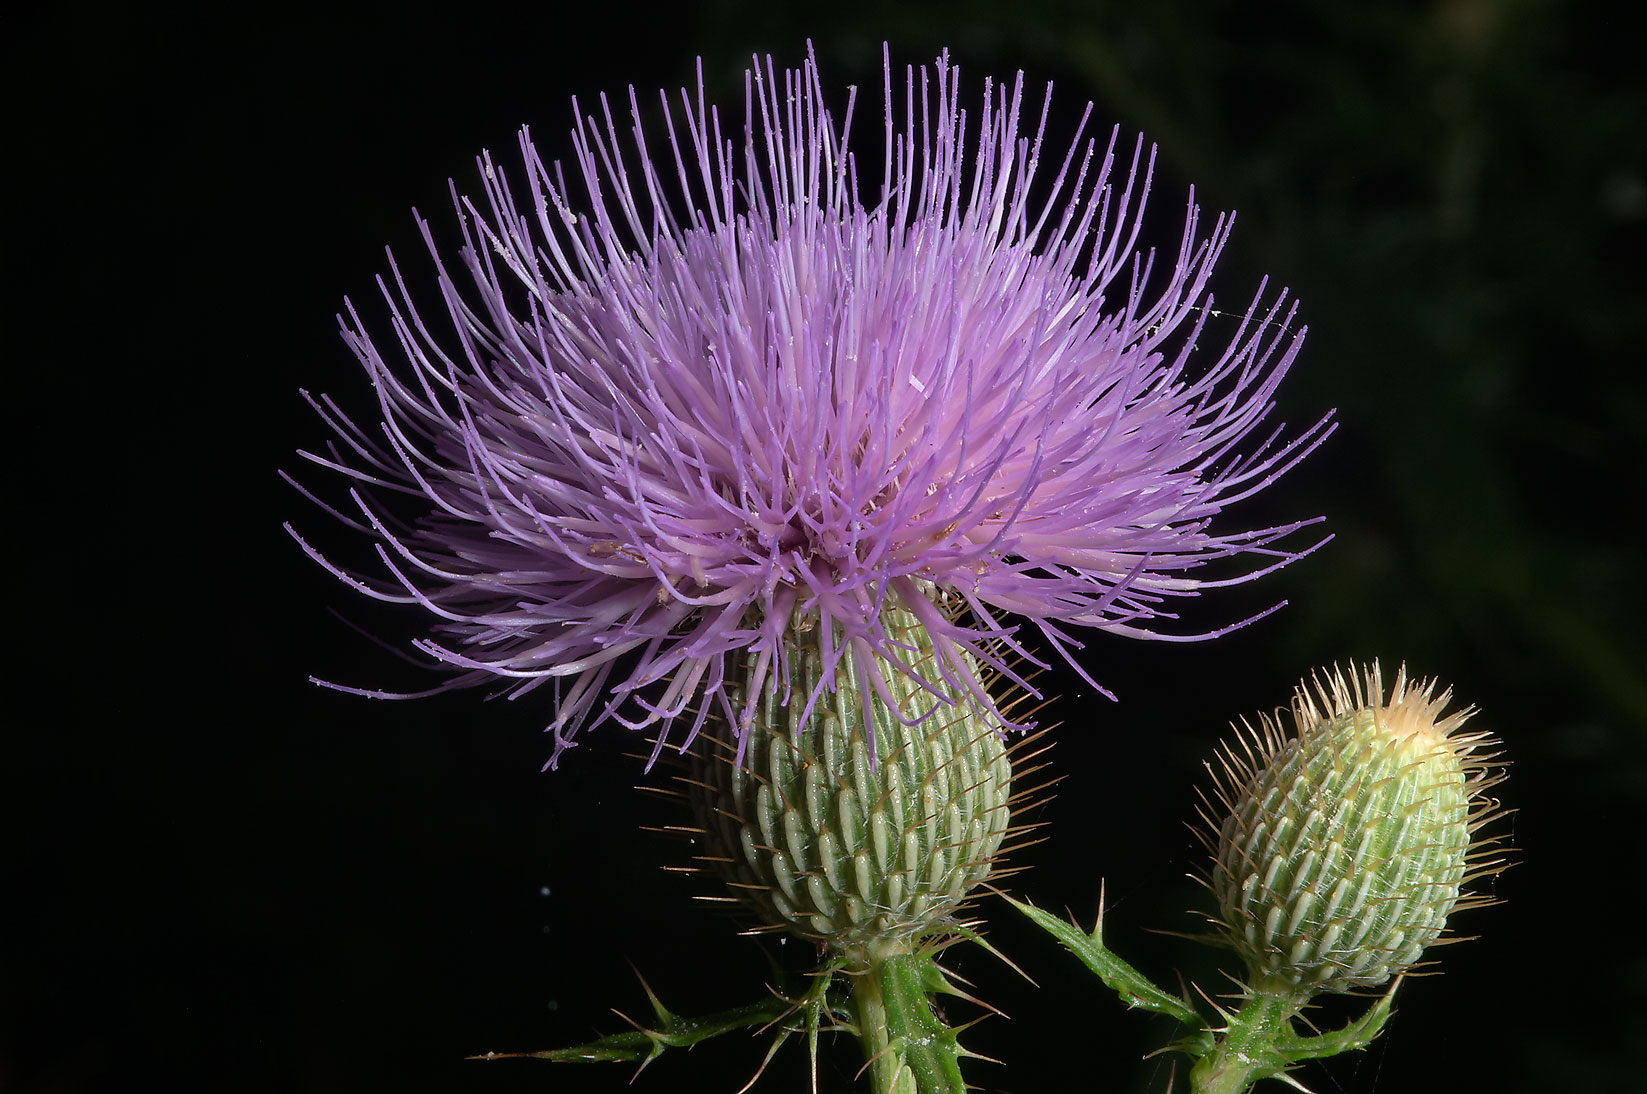 Thistle flower heads (Cirsium engelmannii) in Lick Creek Park. College Station, Texas